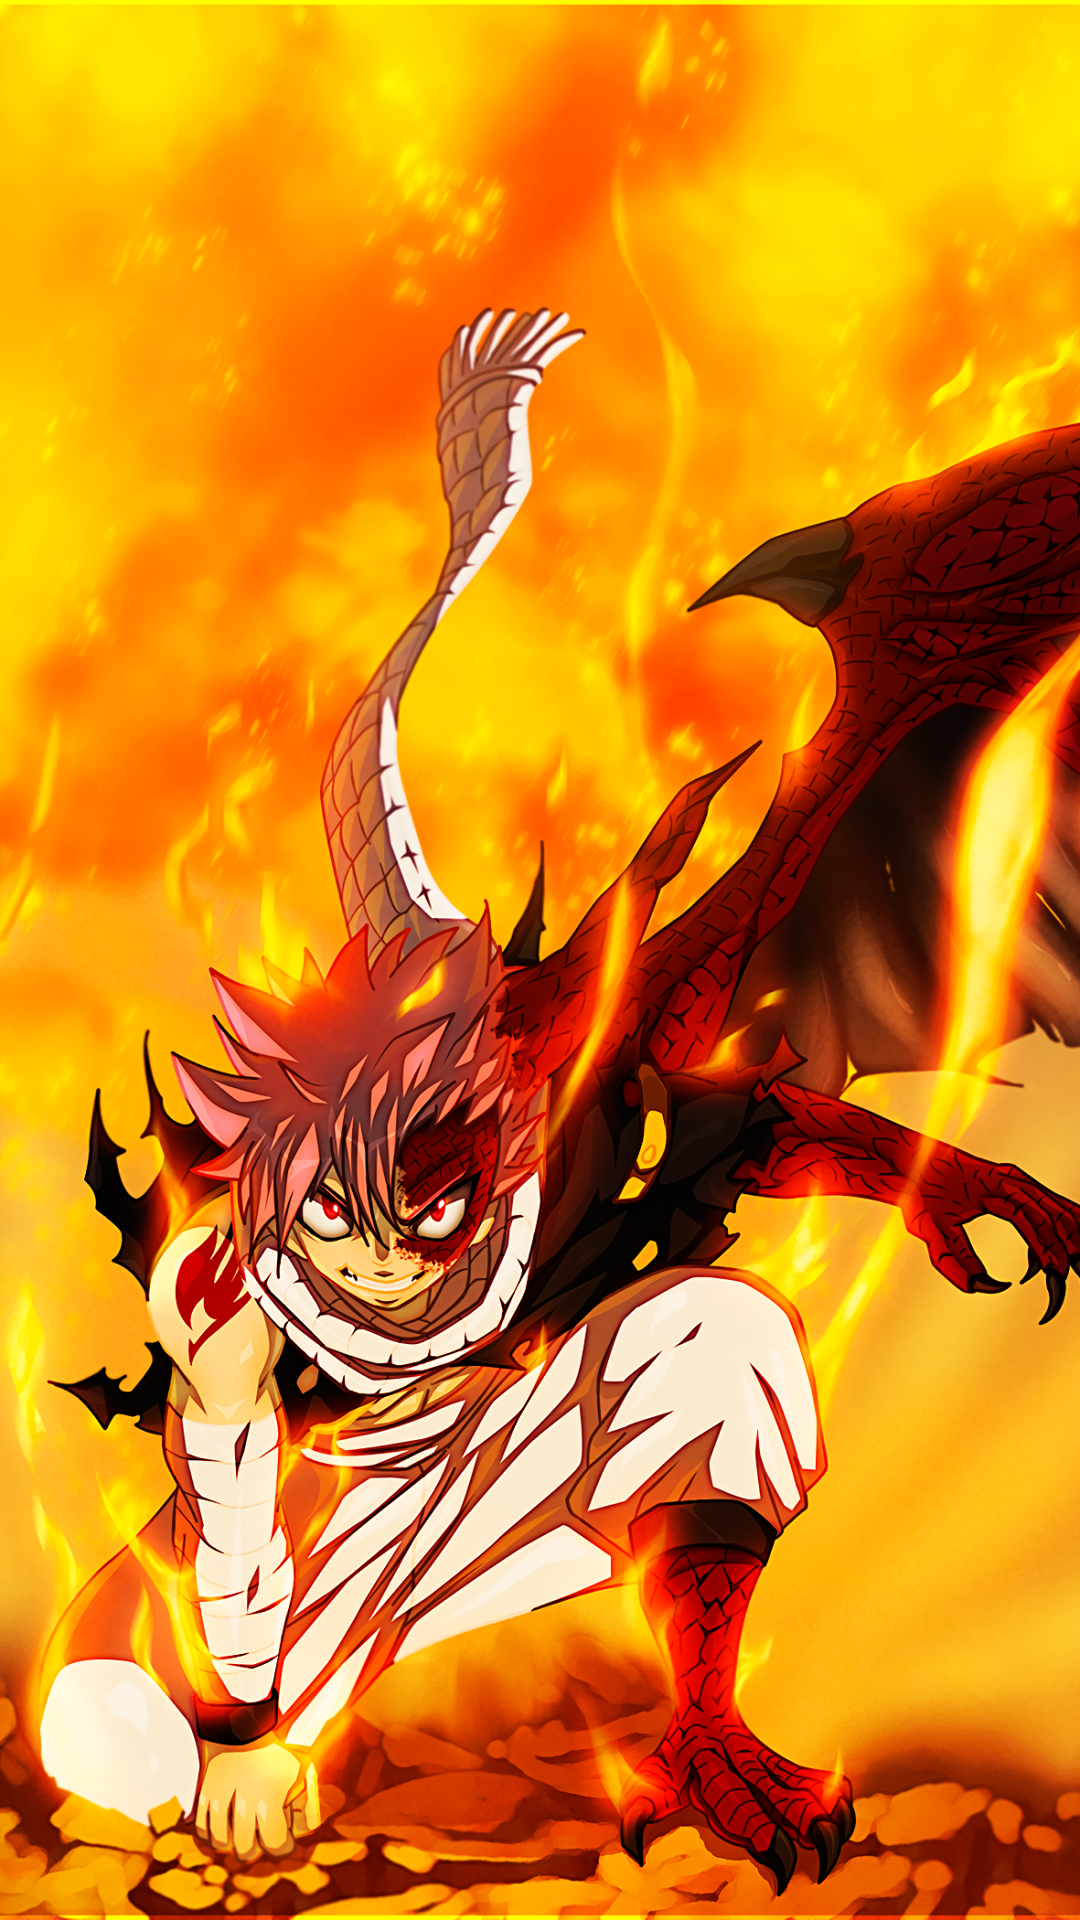 anime fairy tail natsu dragneel fire mobile wallpaper